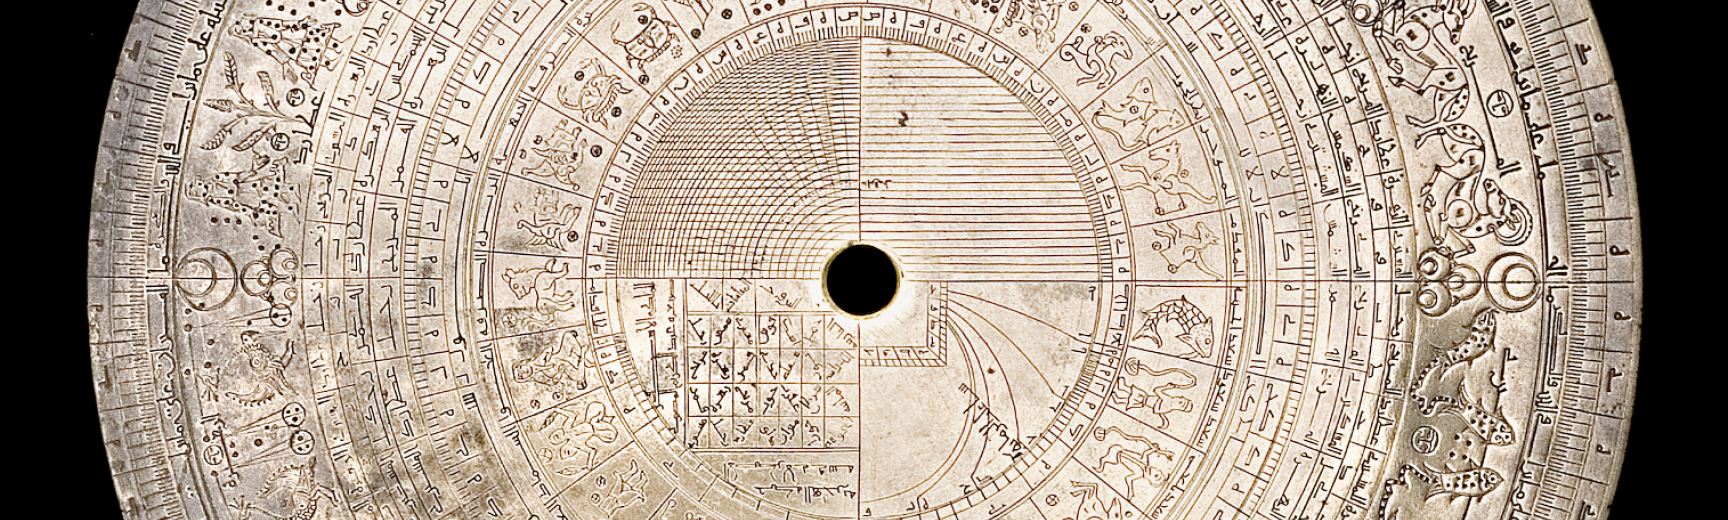 Astrolabe with Lunar Mansions, by Abd al-Karim, Jazira (Mesopotamia)?, 1227/8. Object invetory numer 37148.